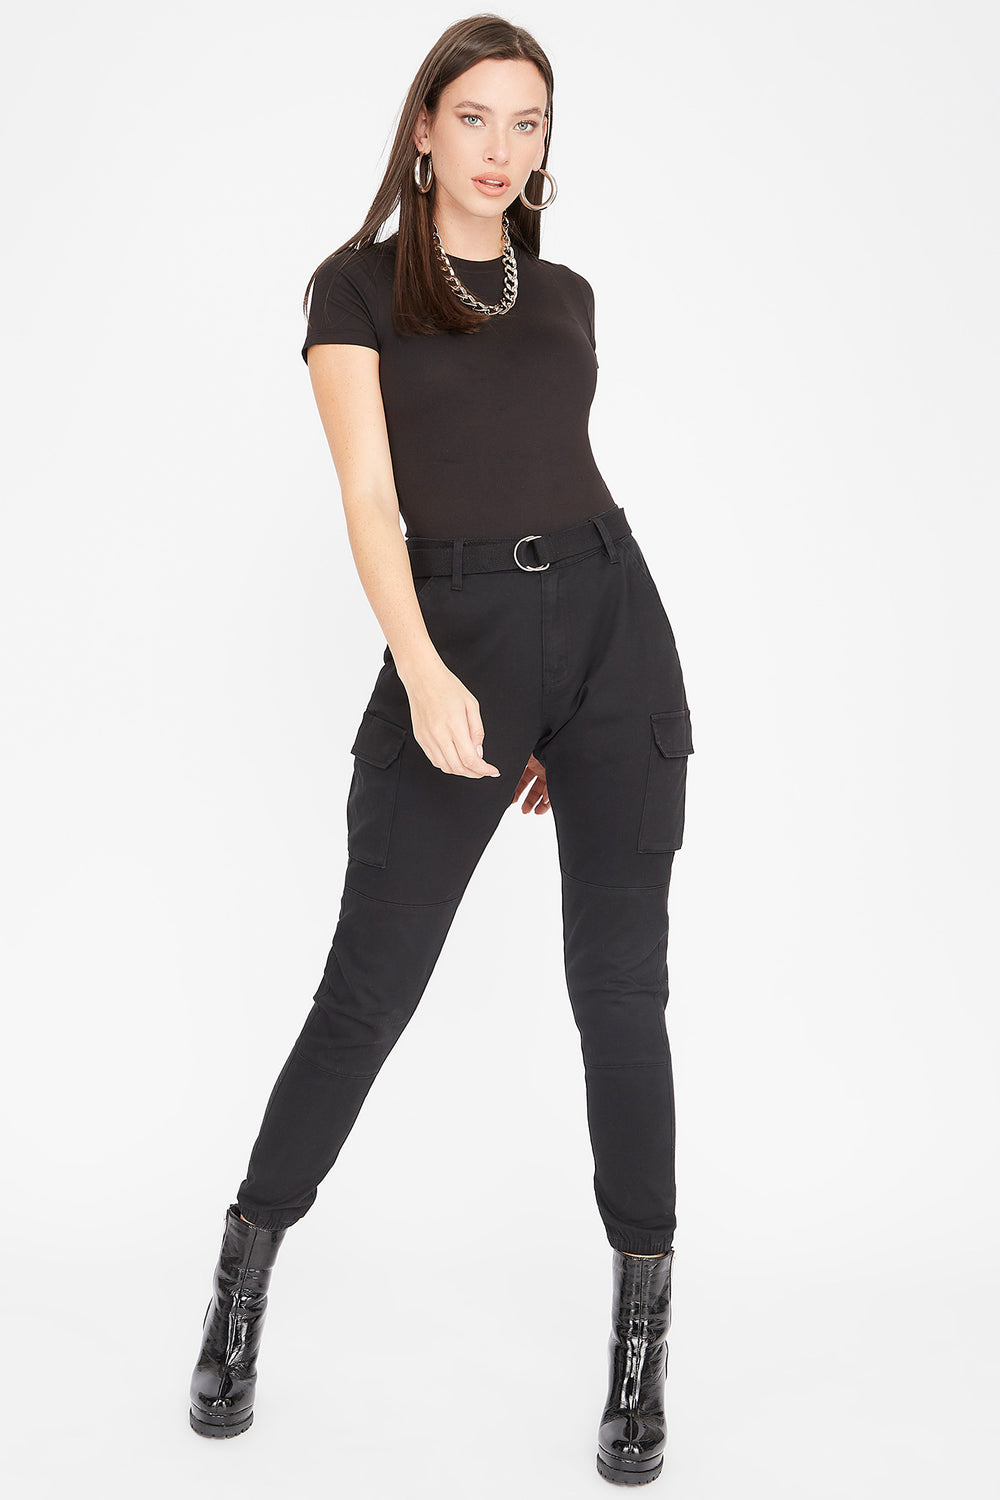 High-Rise D-Ring Belted Skinny Cargo Pant Black